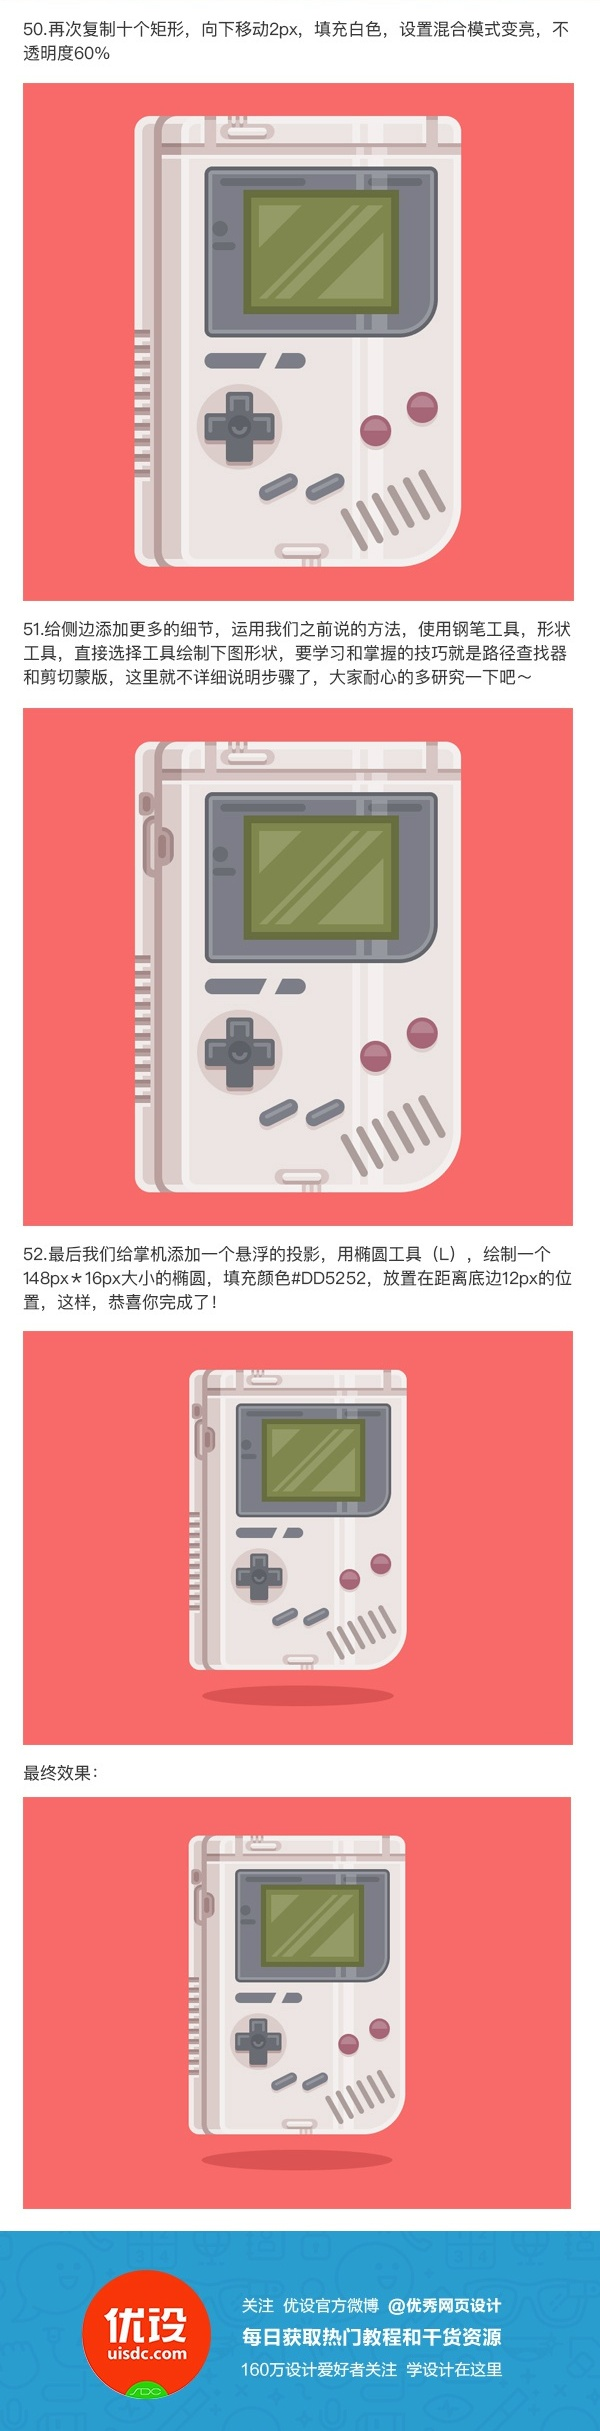 uisdc-gameboy-201701036_6